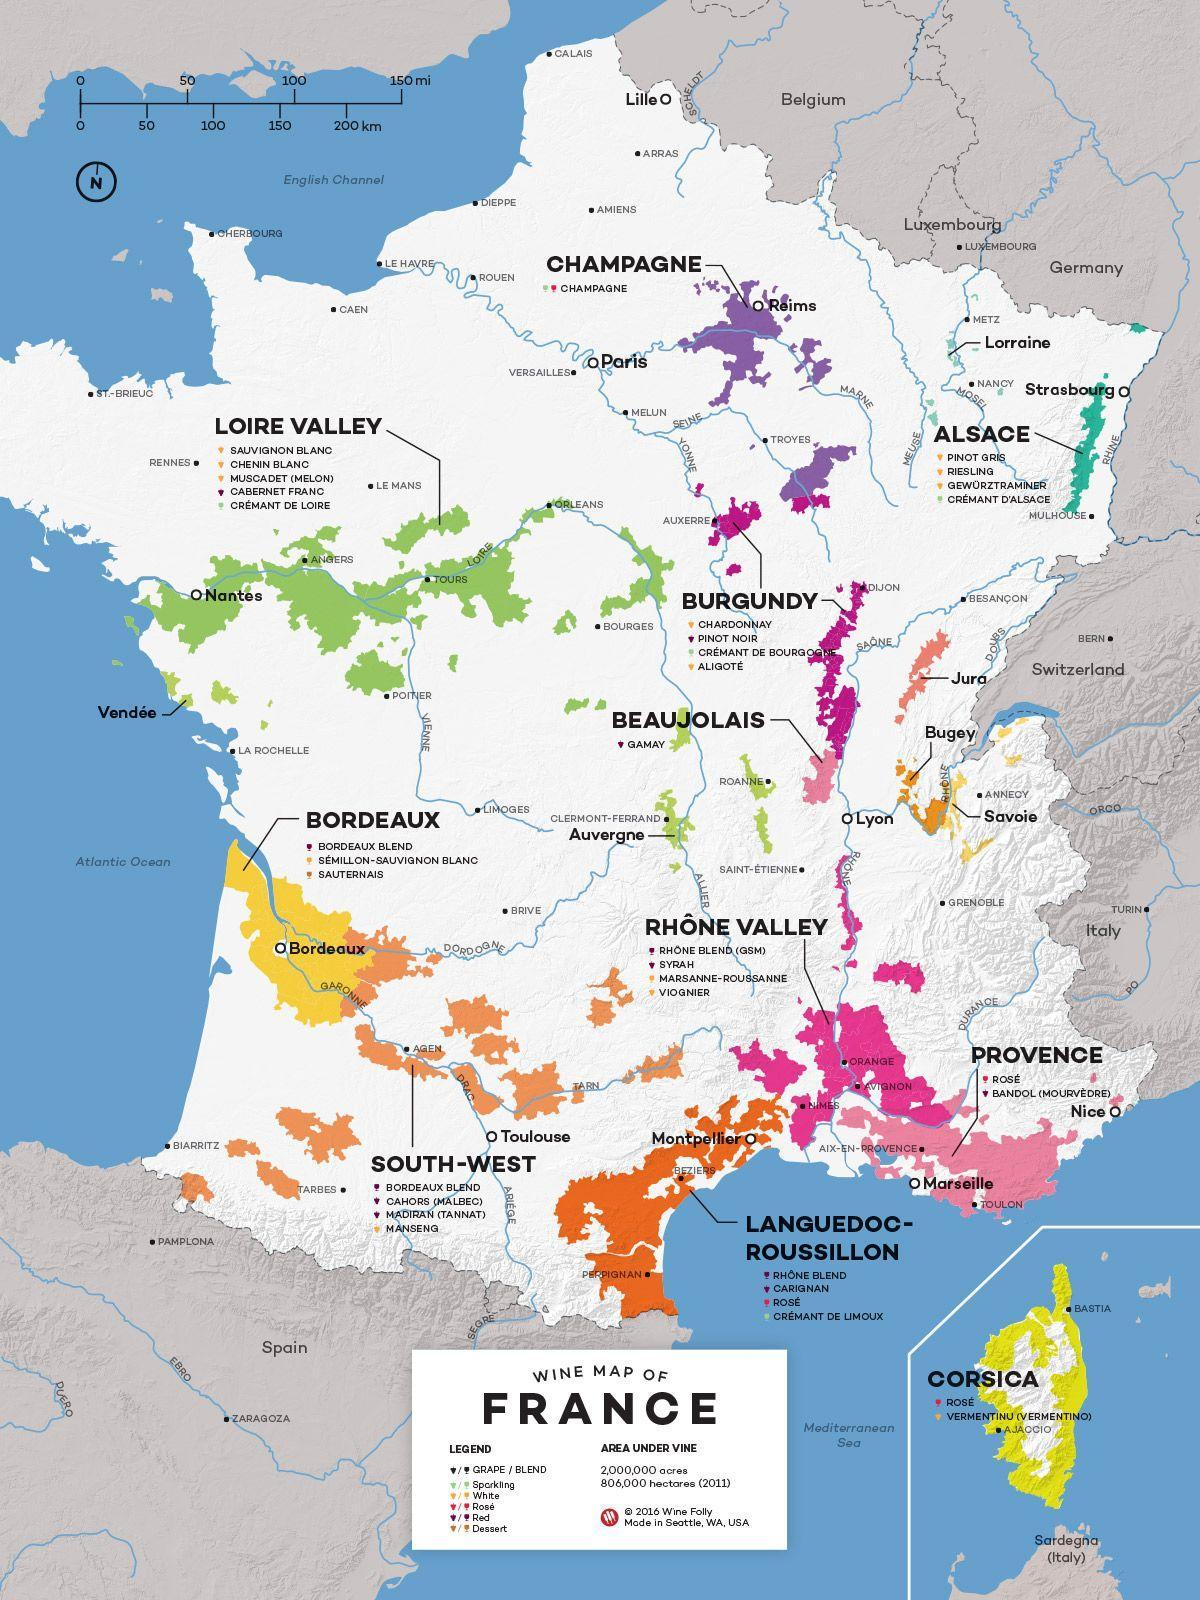 France wine country map